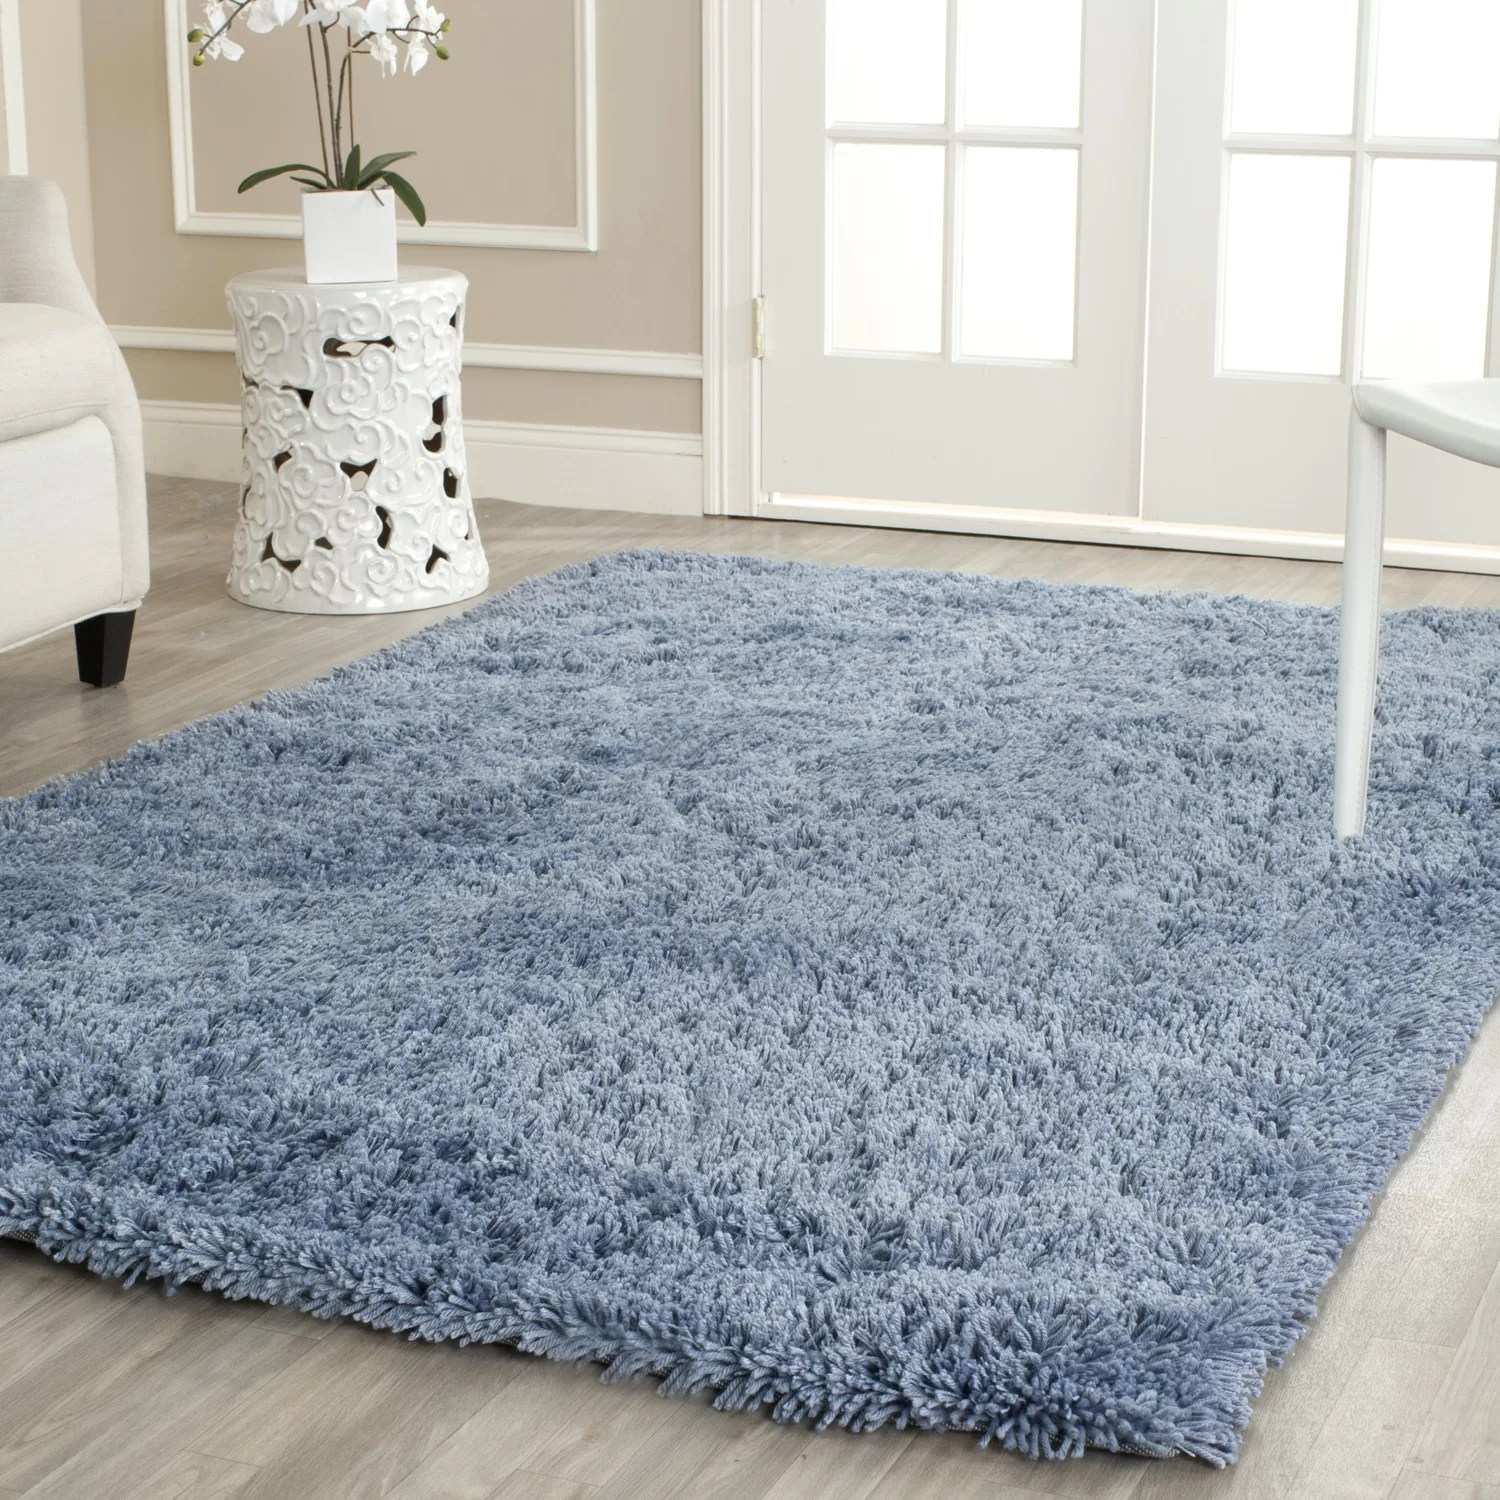 Blue Shag Rug Safavieh Shag Light Blue Area Rug And Reviews Wayfair